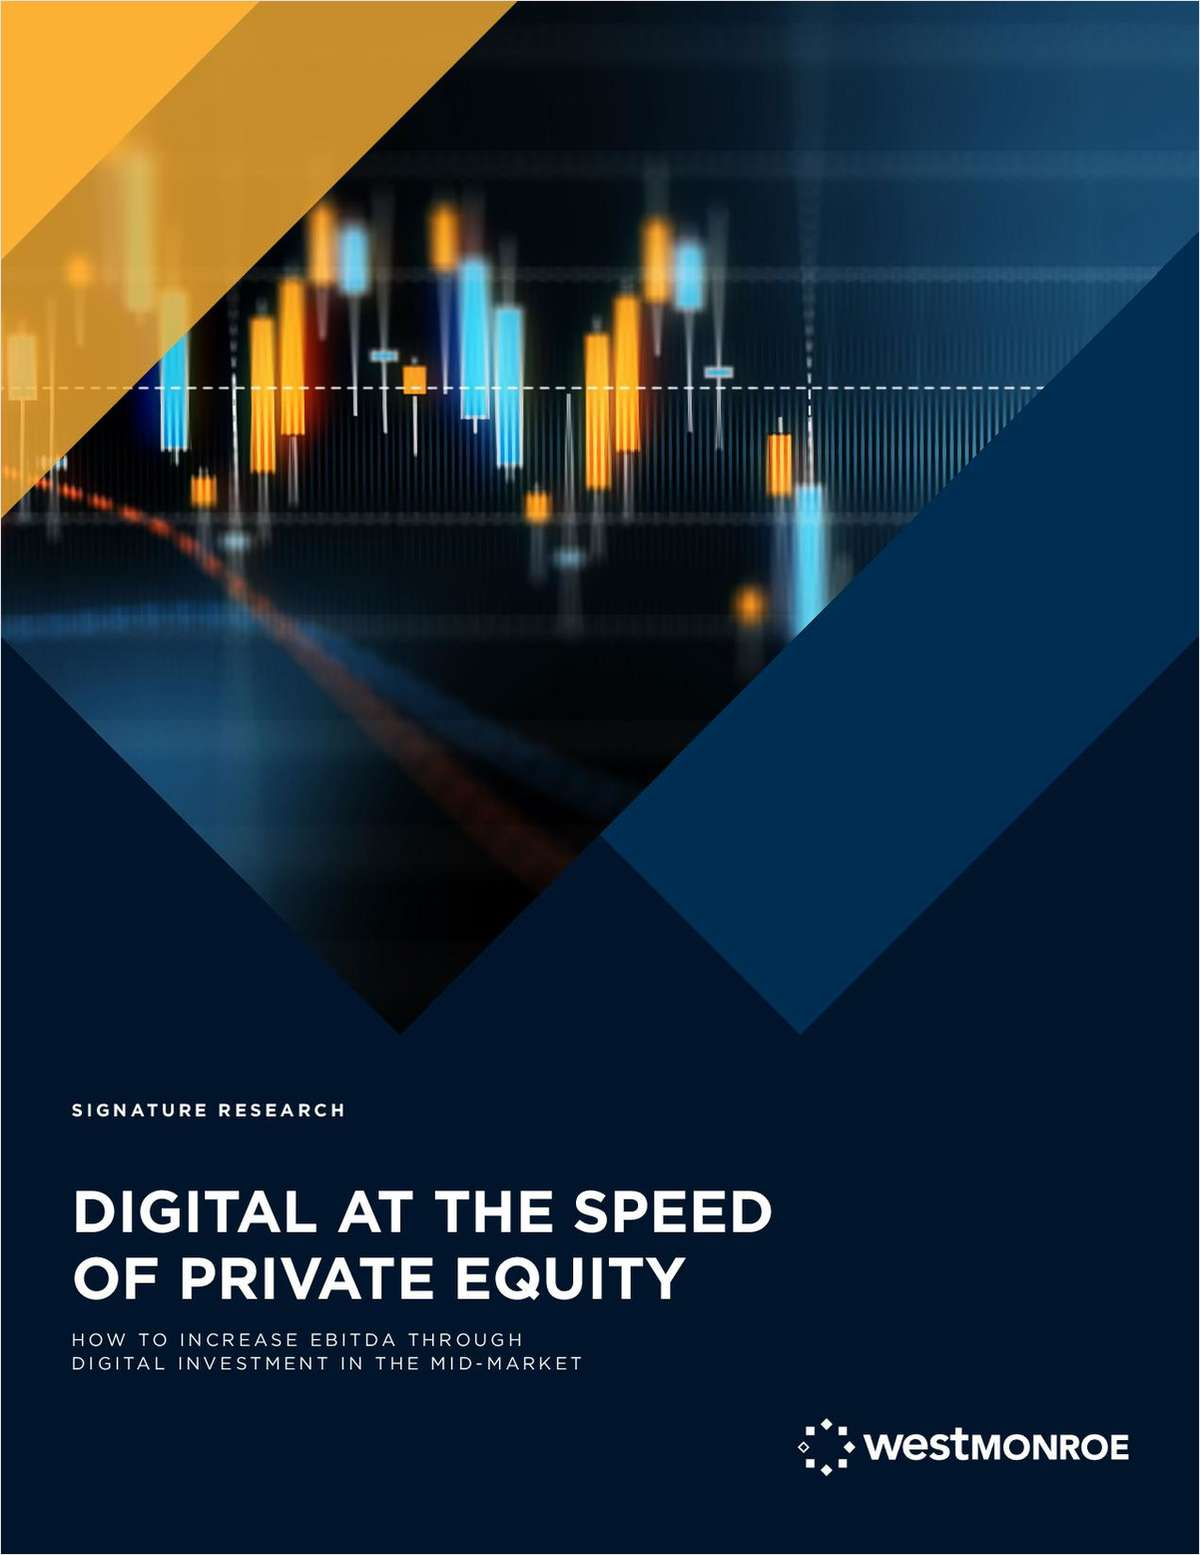 Digital at the Speed of Private Equity